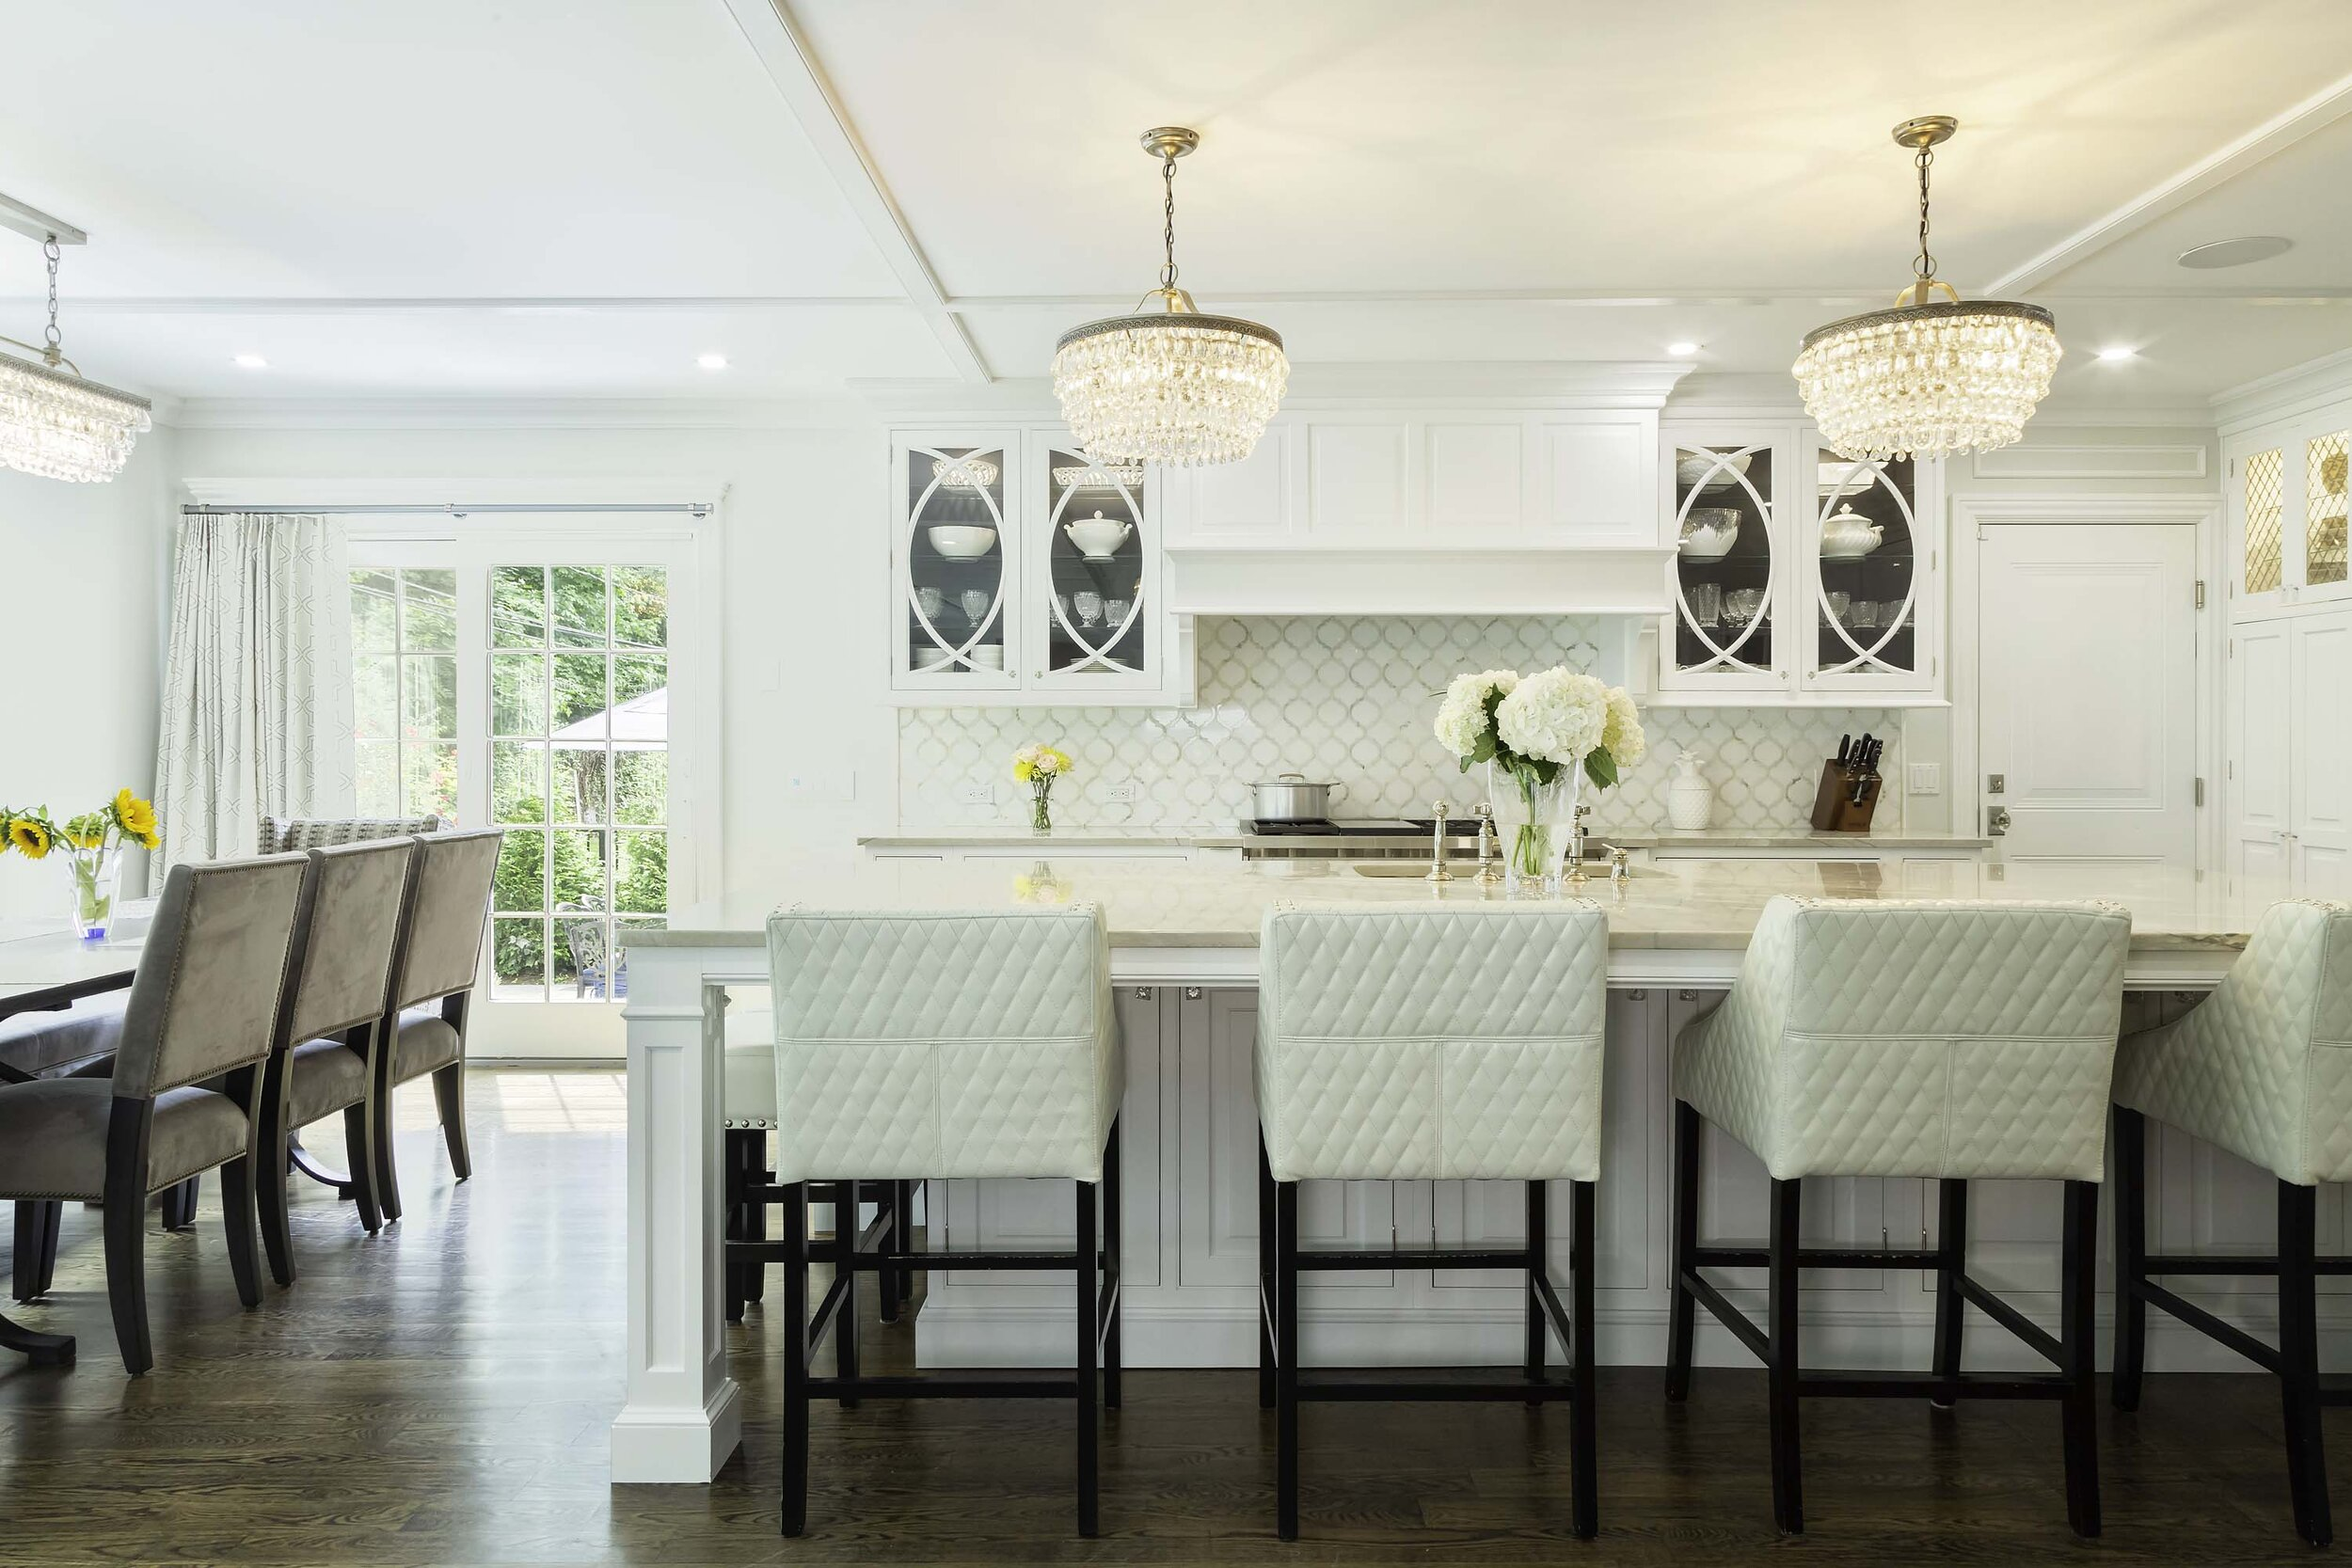 Traditional white kitchen with curved mullion doors and cross-patterned details